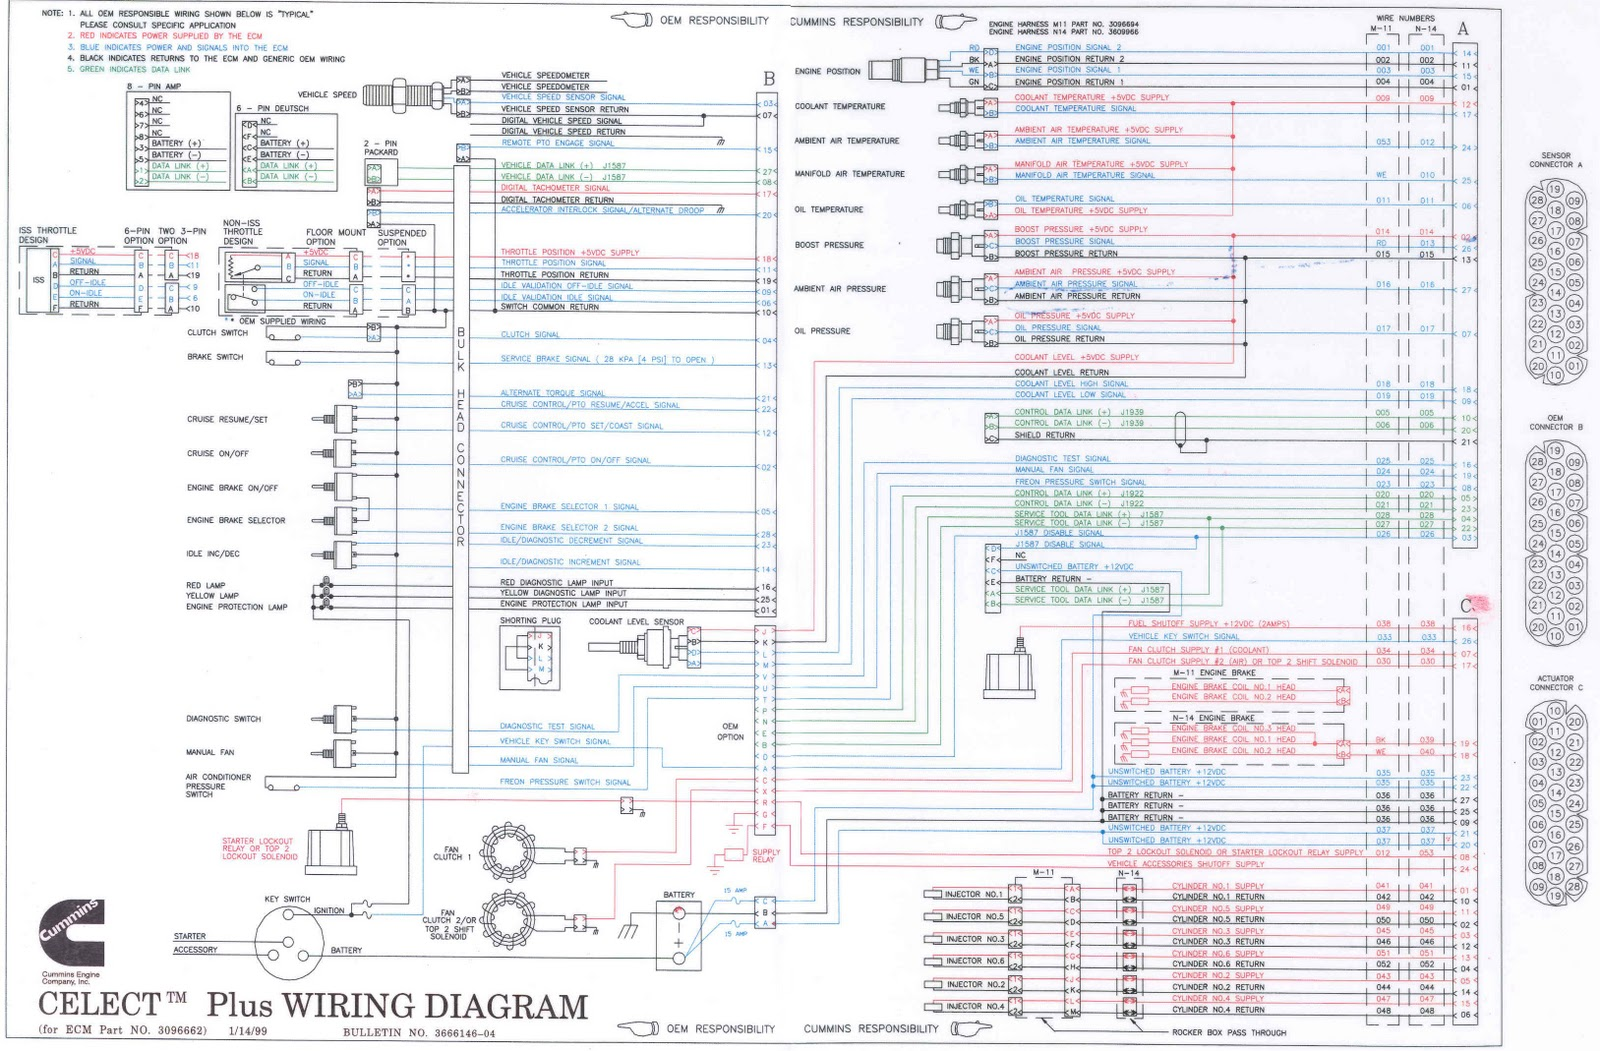 1 2 Hp 3450 Rpm Electric Motor Wiring Diagram together with 72 Volt Wiring Diagram also 230 Volt  pressor Wiring Wiring Diagrams as well Single Phase 220v Wiring Diagram likewise Water Pressure Switch Wiring Diagram. on air pressor wiring diagram